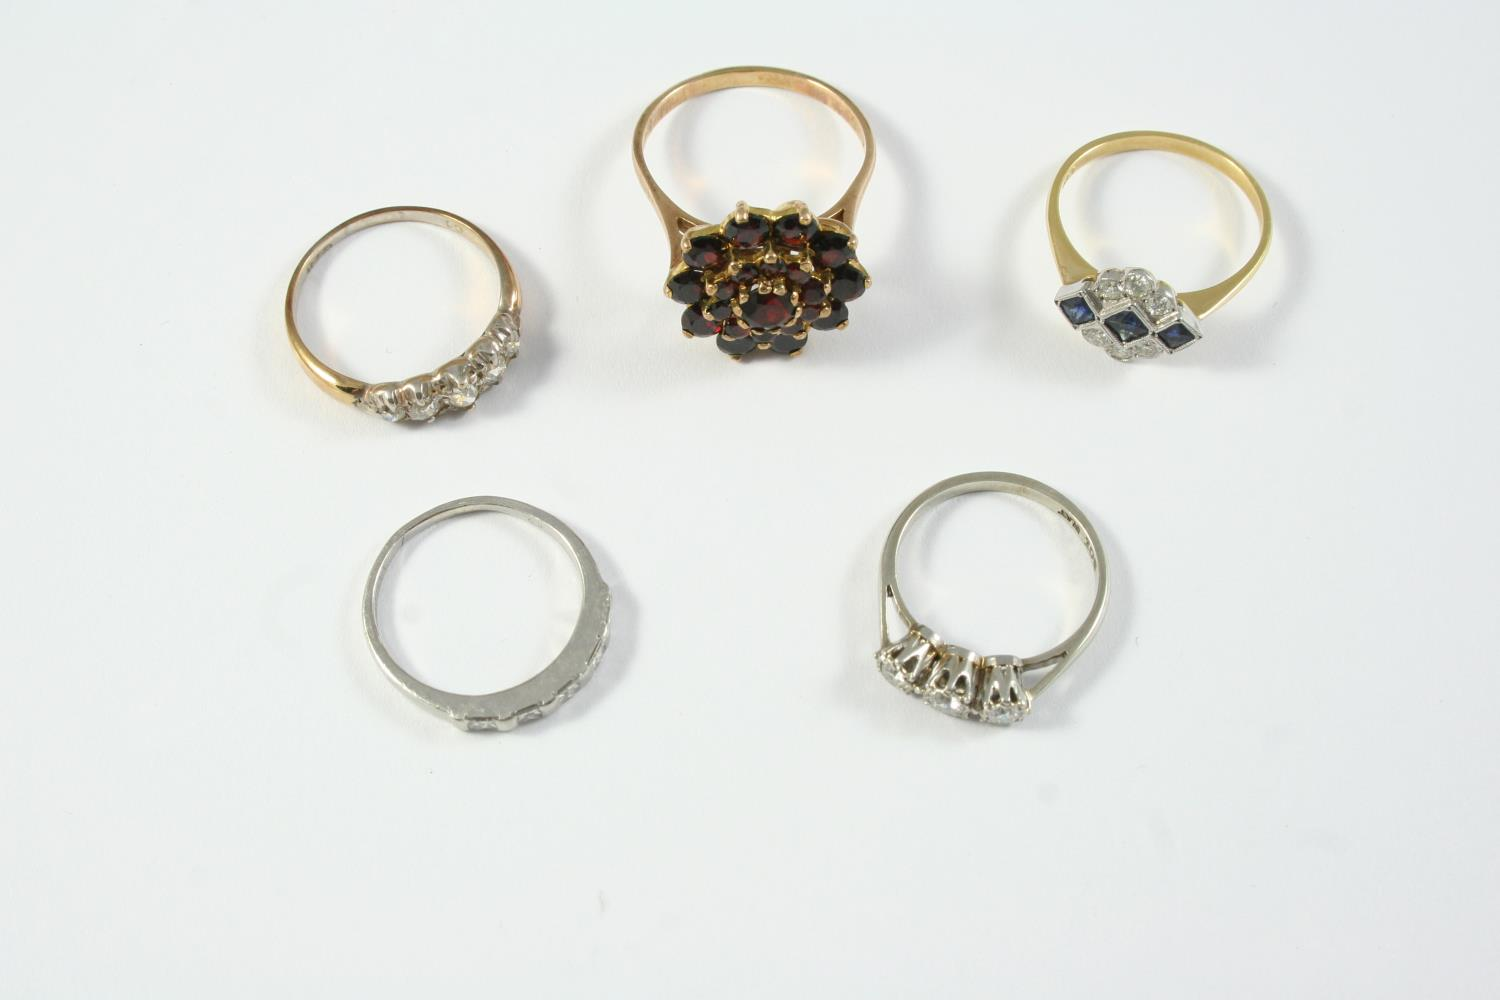 FIVE ASSORTED GOLD AND GEM SET RINGS including a diamond three stone ring, set in white gold and